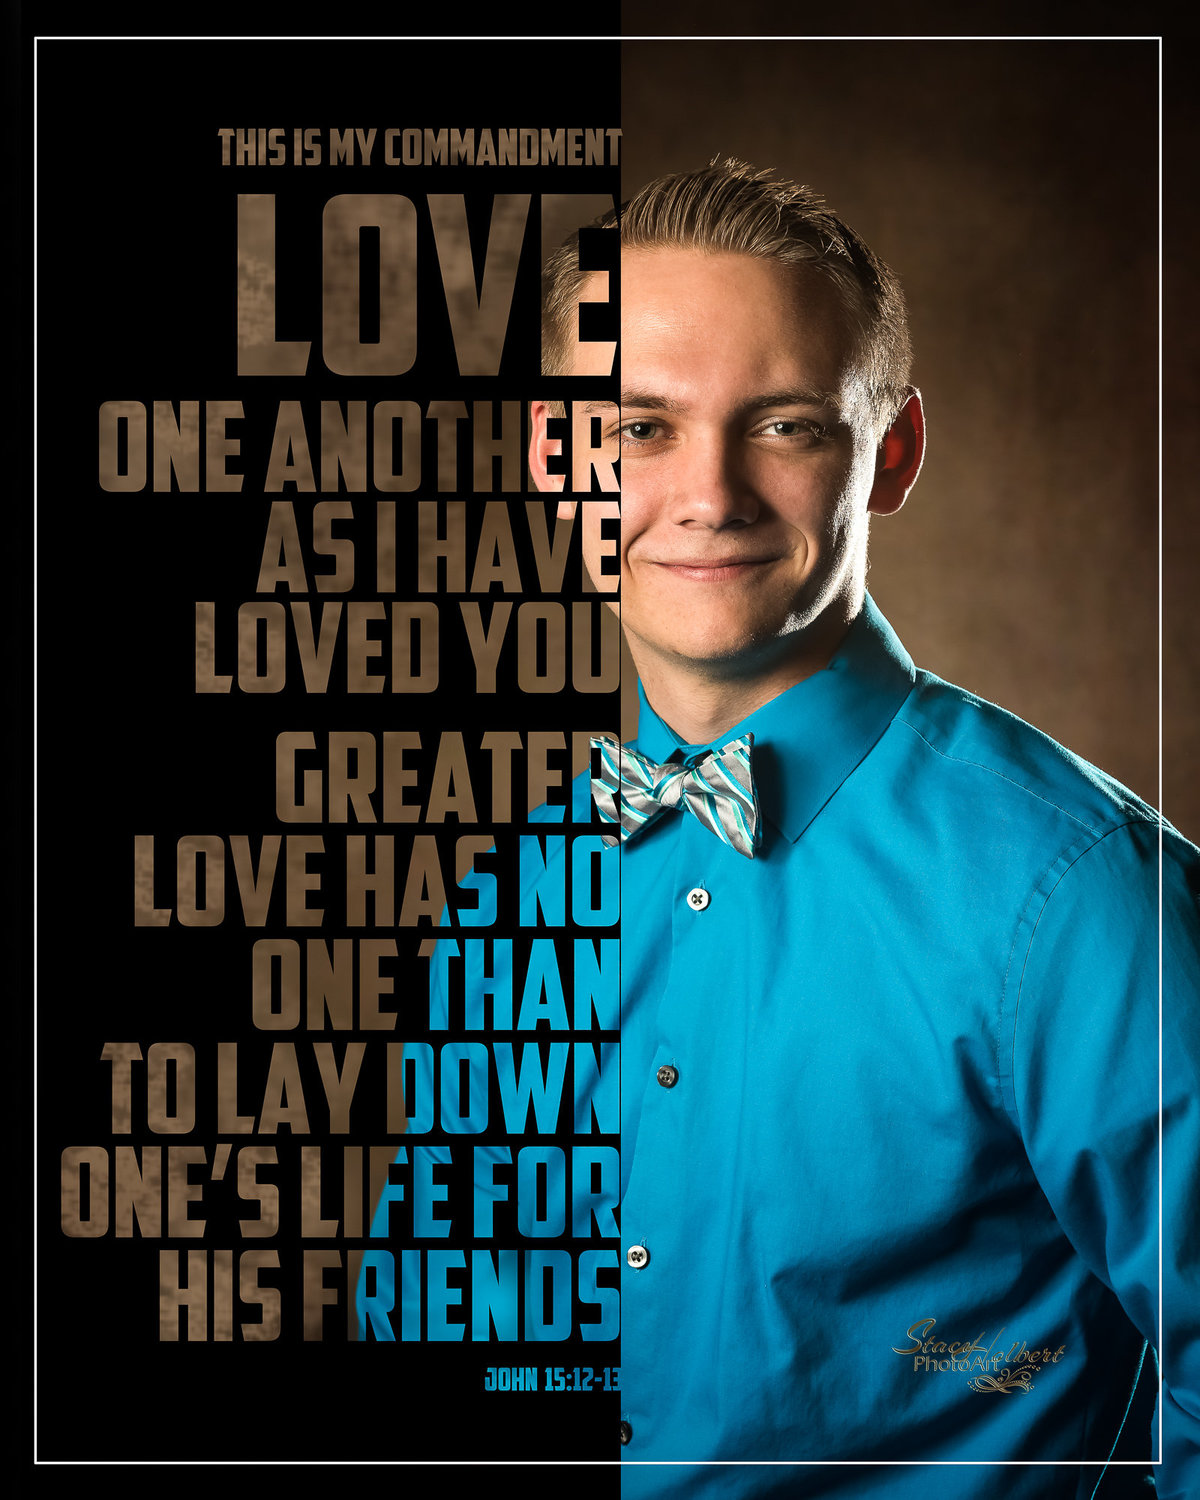 Senior Photo with Word Art Scripture Quote. Photo by Stacy Holbert, Booneville AR